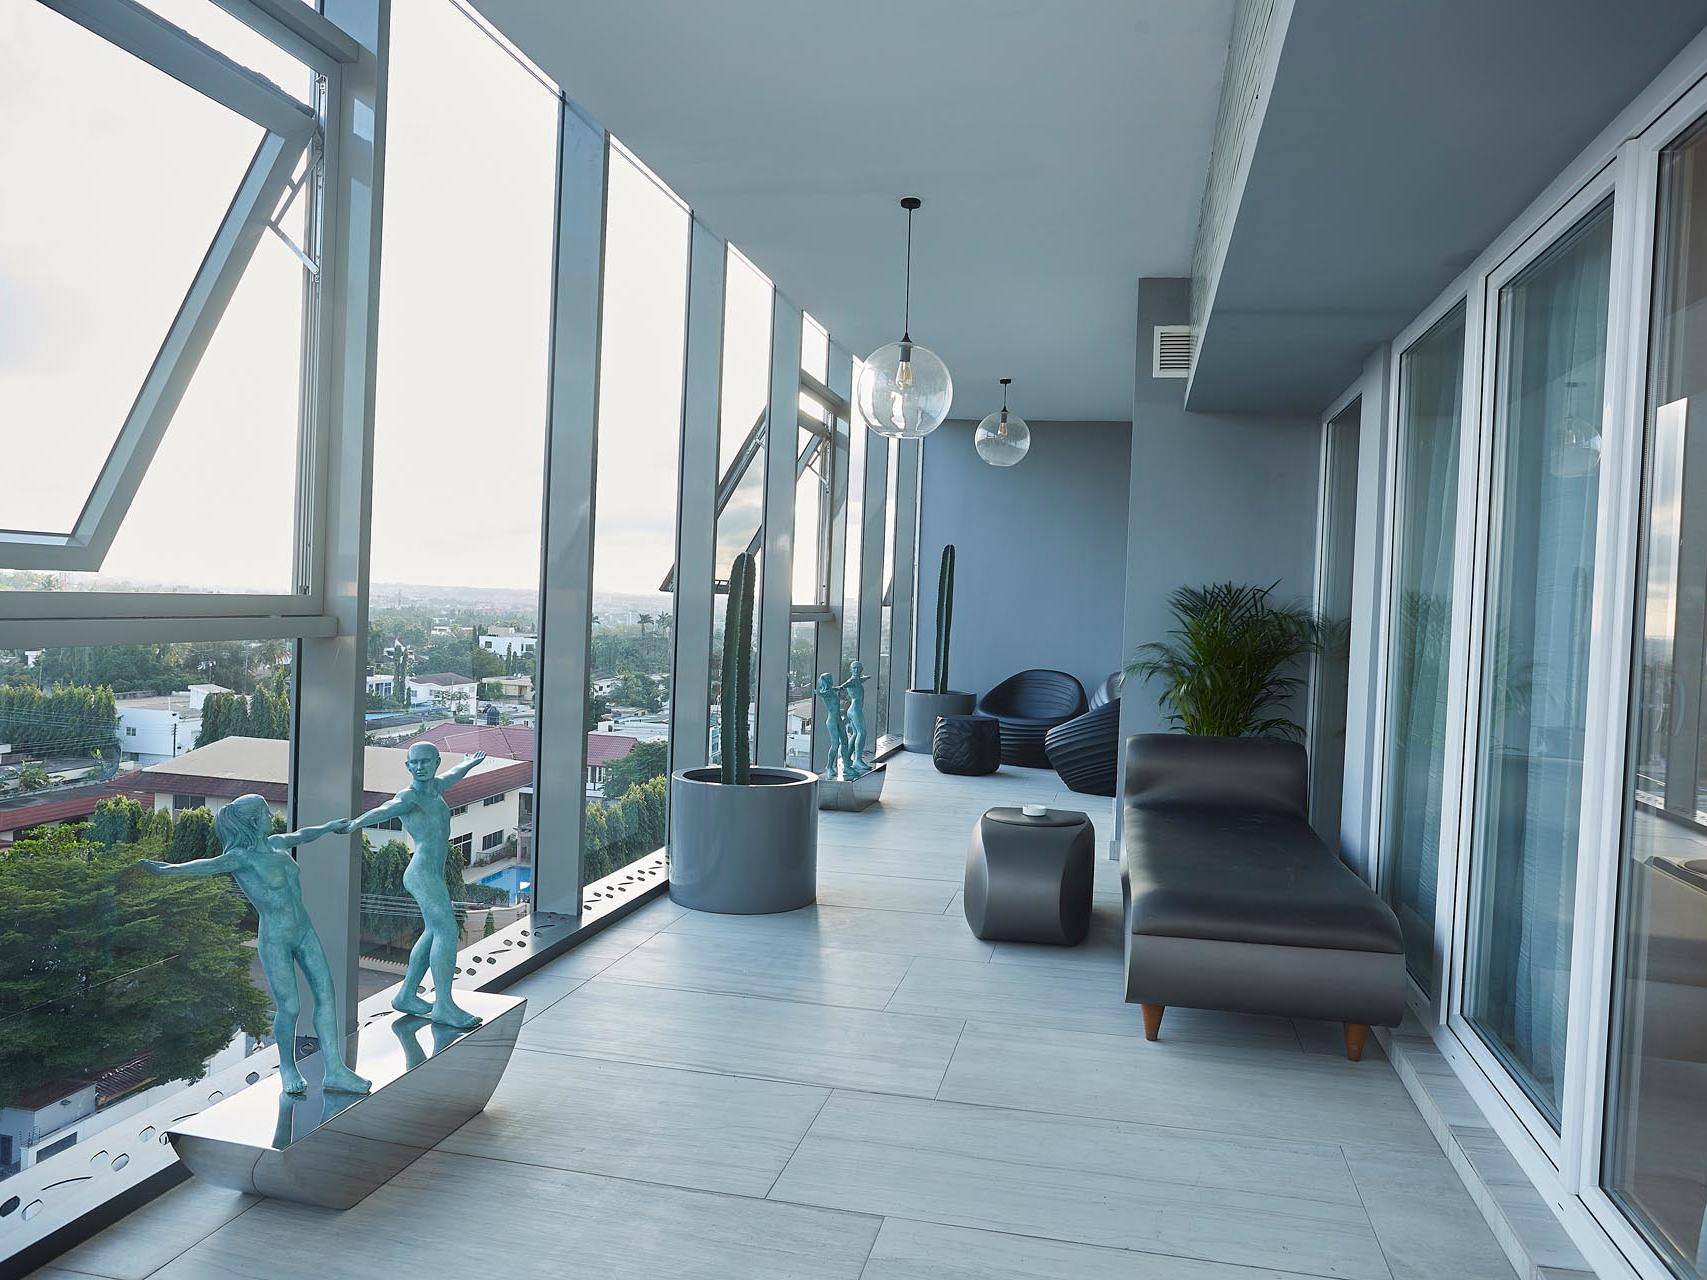 Three bedroom presidential penthouse suite at Kwarleyz Residence in Accra